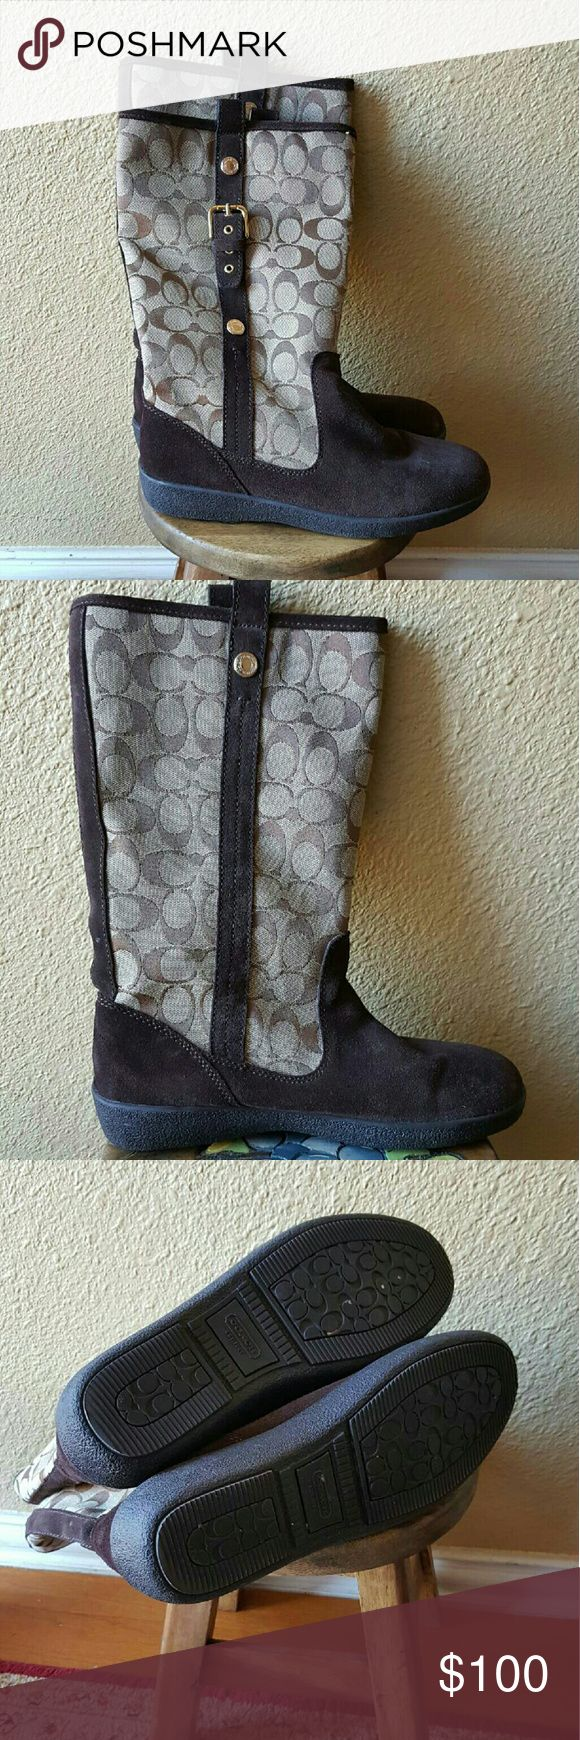 Authentic COACH Boots Authentic COACH Boots. WORN ONCE. Like New. Coach Shoes Winter & Rain Boots